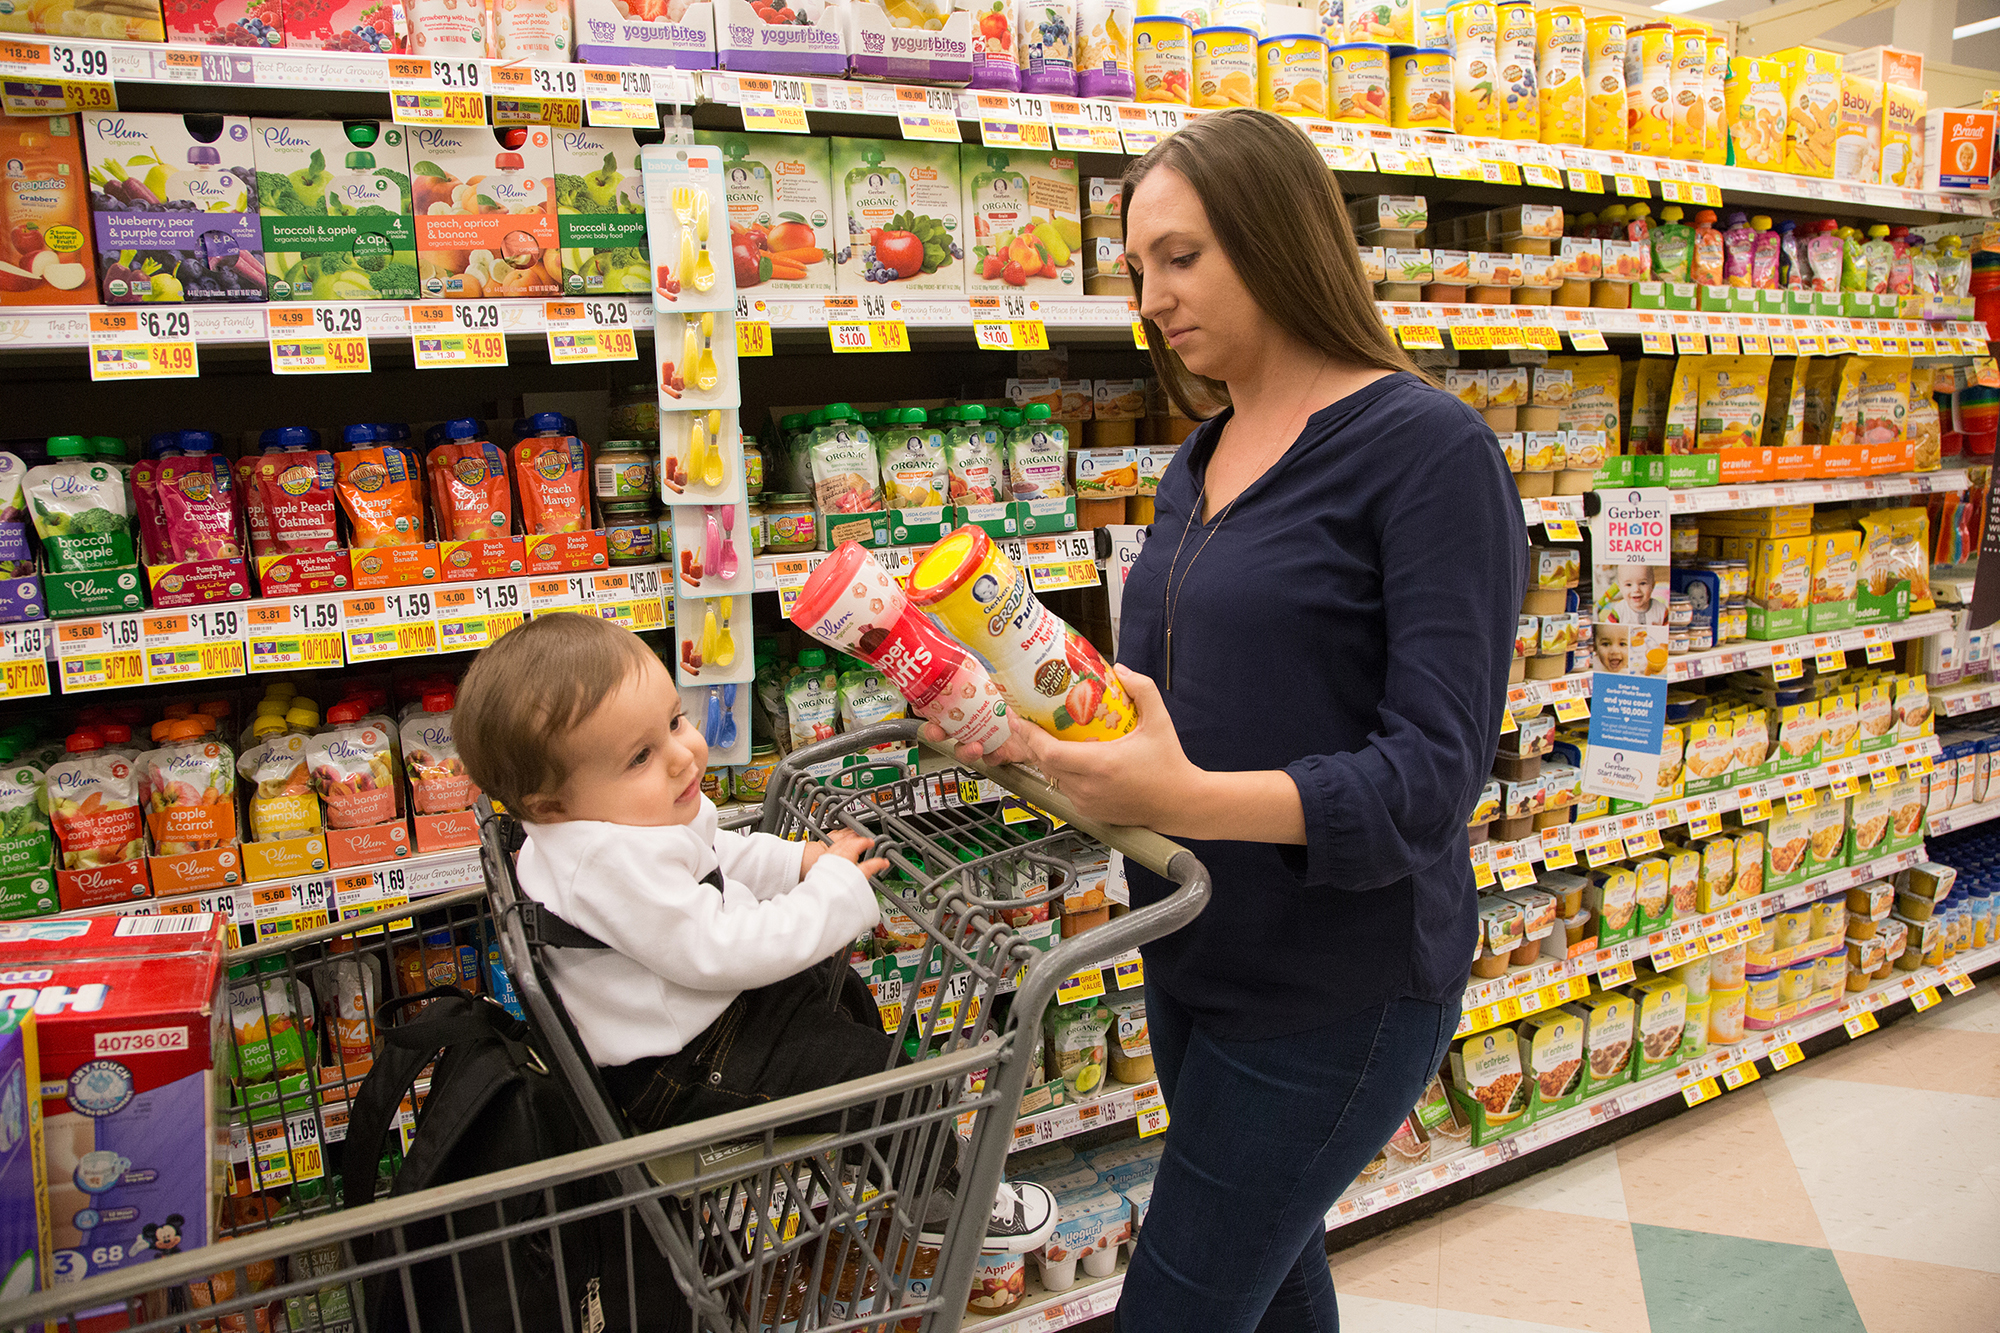 Baby Food Ads Often Contradict Health Experts